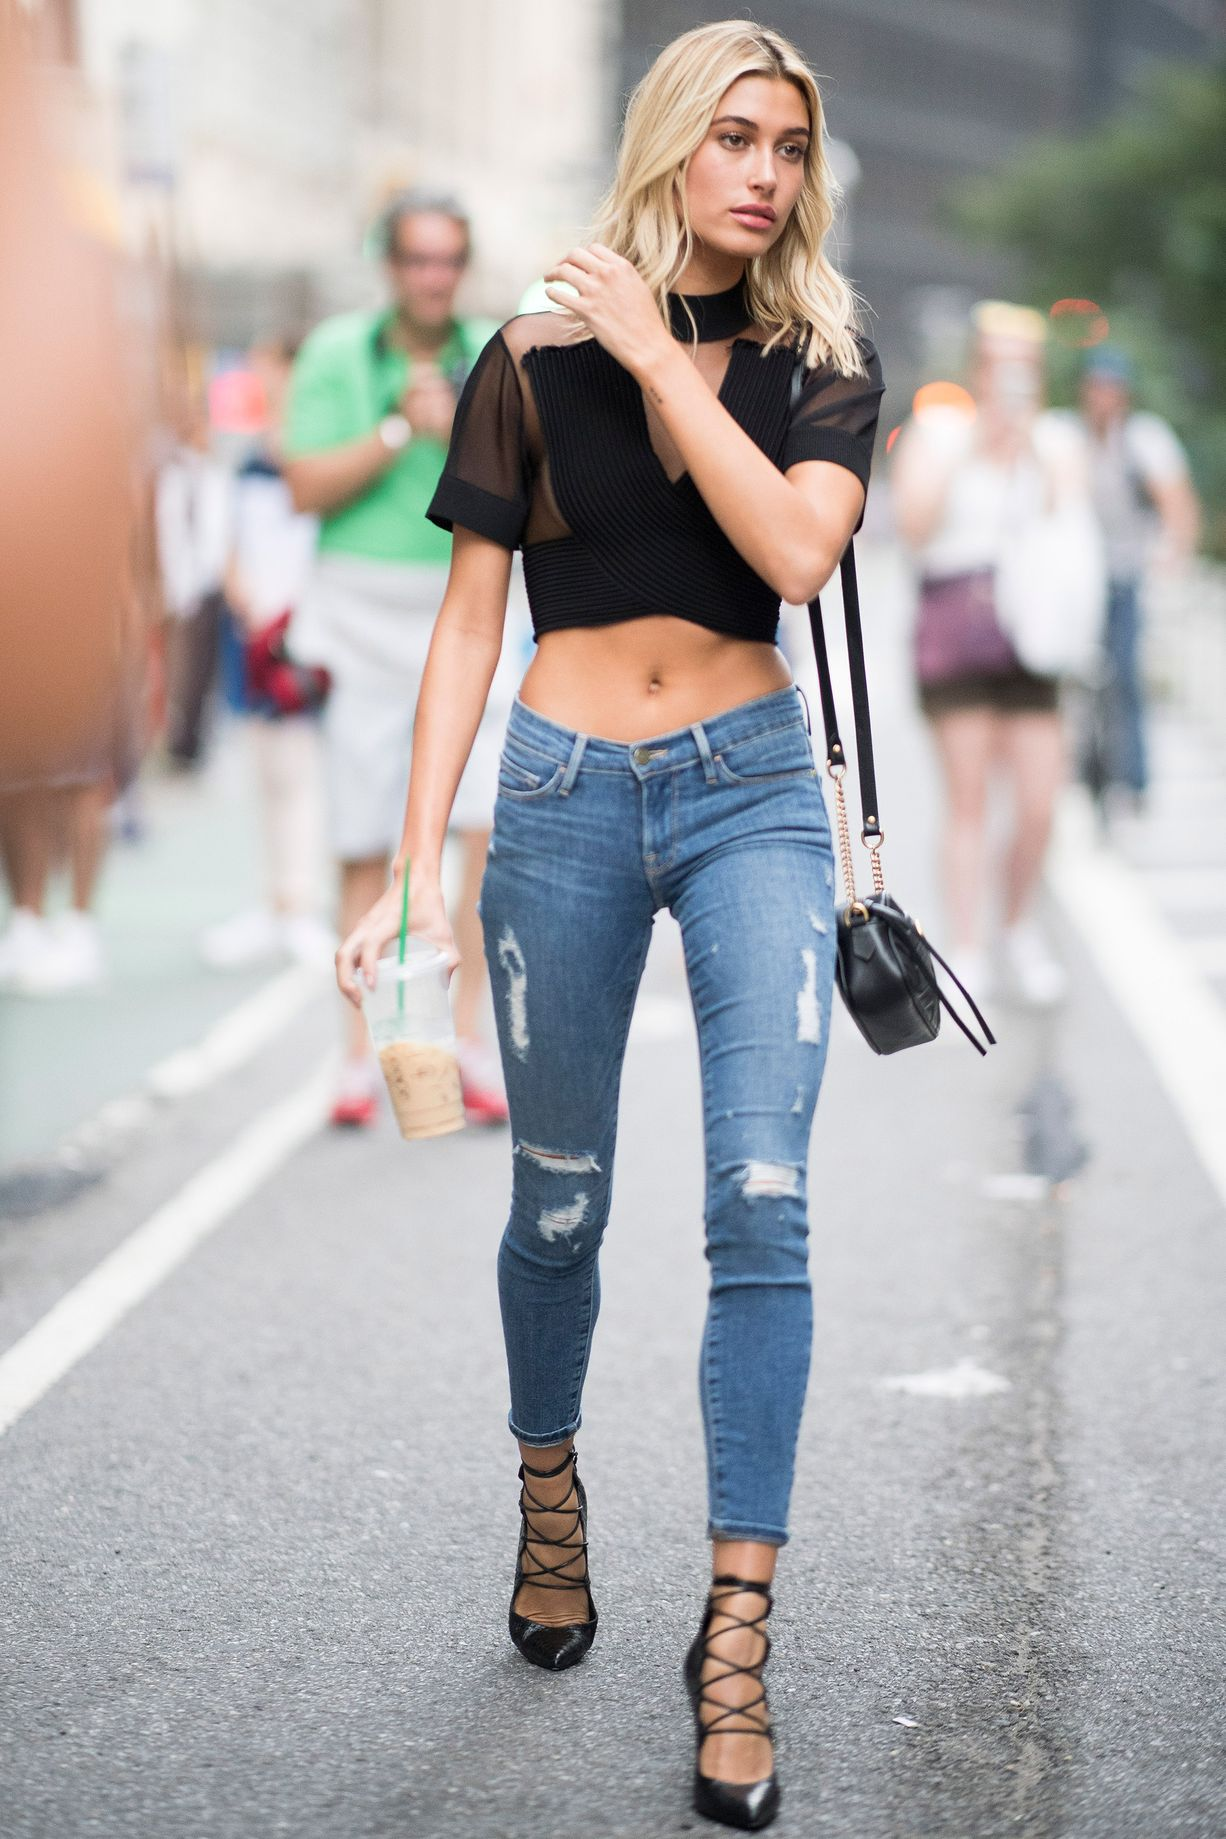 bd814b1fab5e3 HOW VICTORIA'S SECRET MODELS DO SUMMER STYLE - Into the fashion